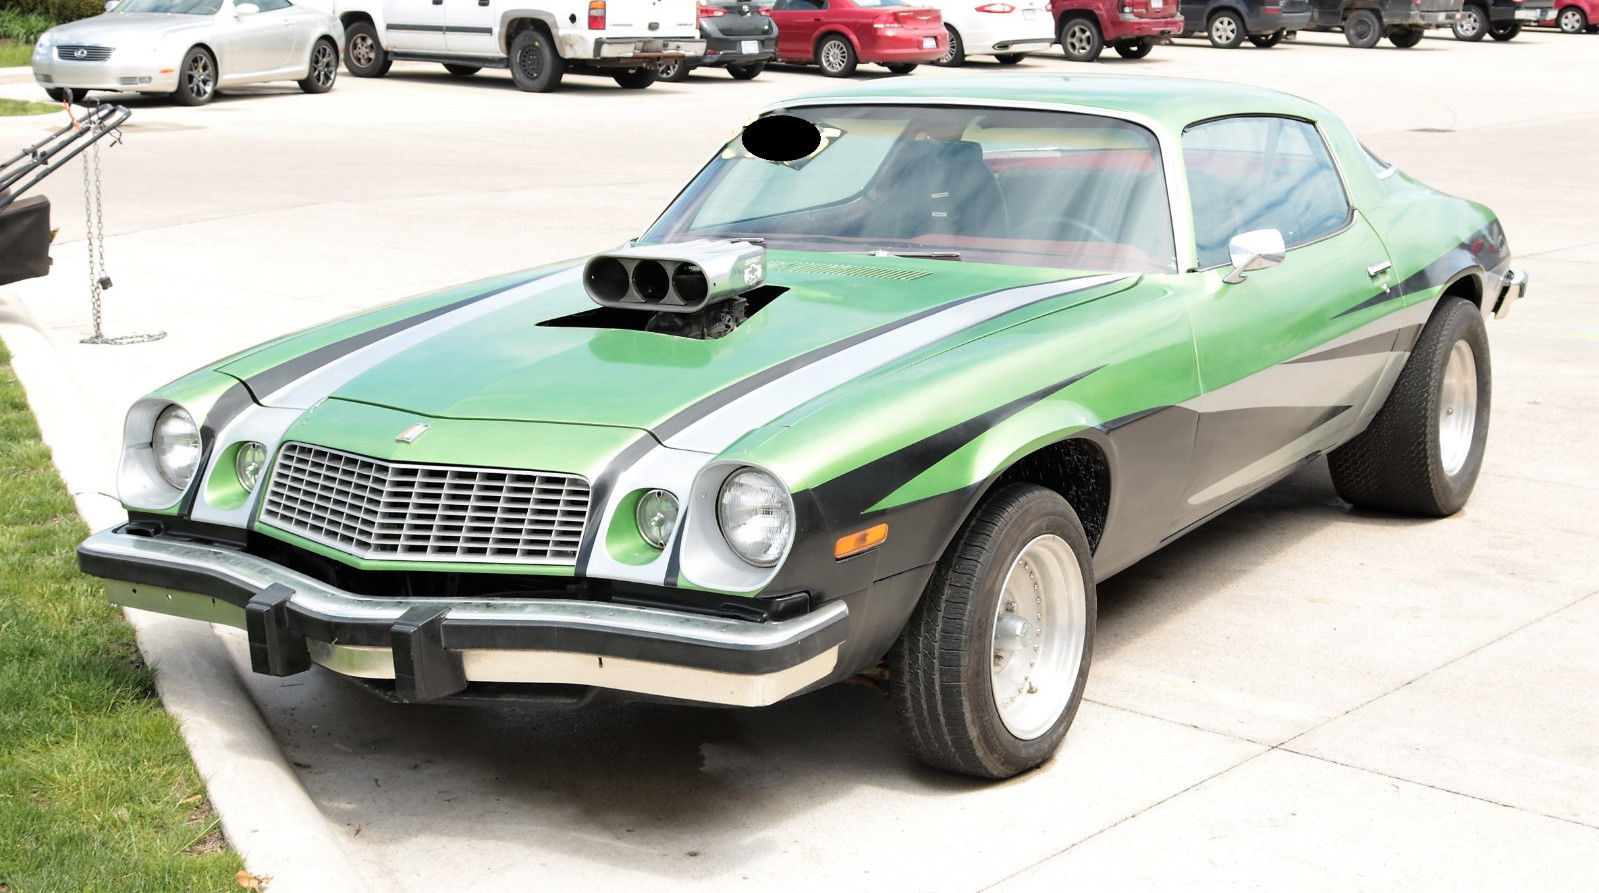 hight resolution of if cars could talk this 1976 chevrolet camaro would be telling all sorts of stories